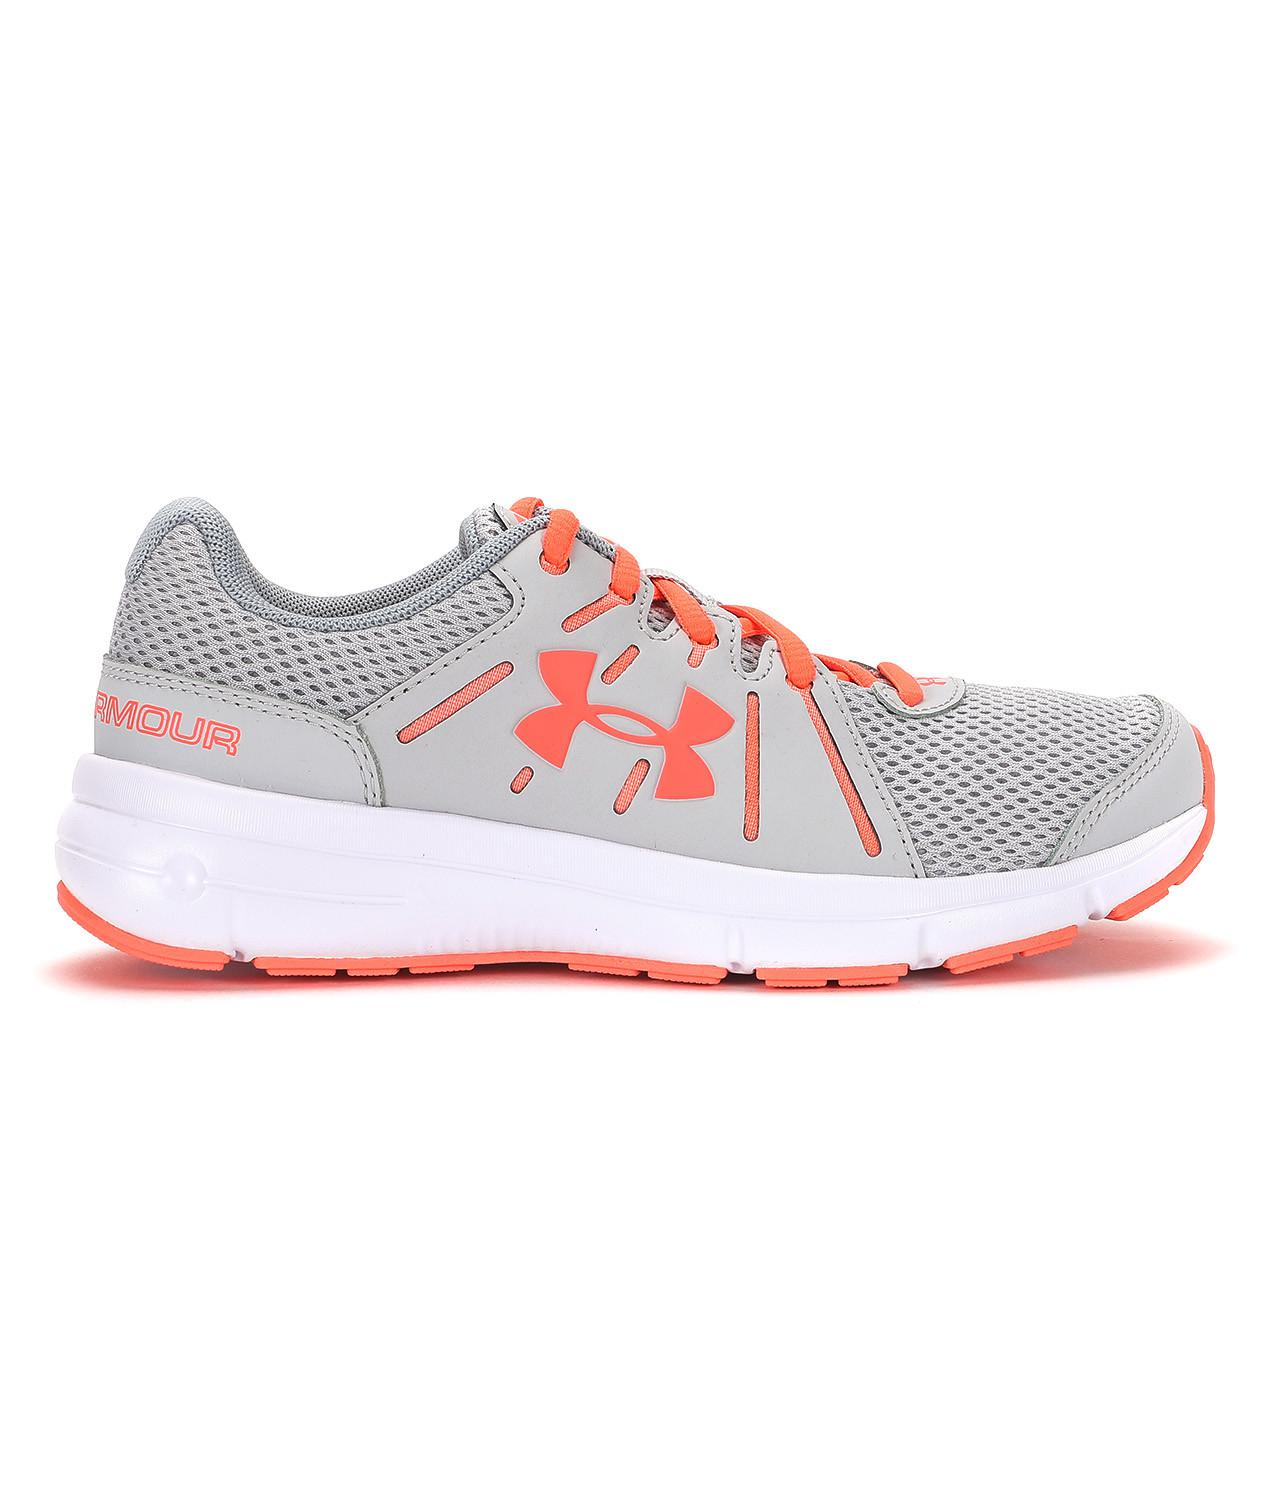 Brand New Unisex Under Armour Dash RN 2 Running Shoe(Women's) -Apollo Gray/White/Blue Infinity Order For Sale Free Shipping Supply With Credit Card Free Shipping AXw4p72Fn